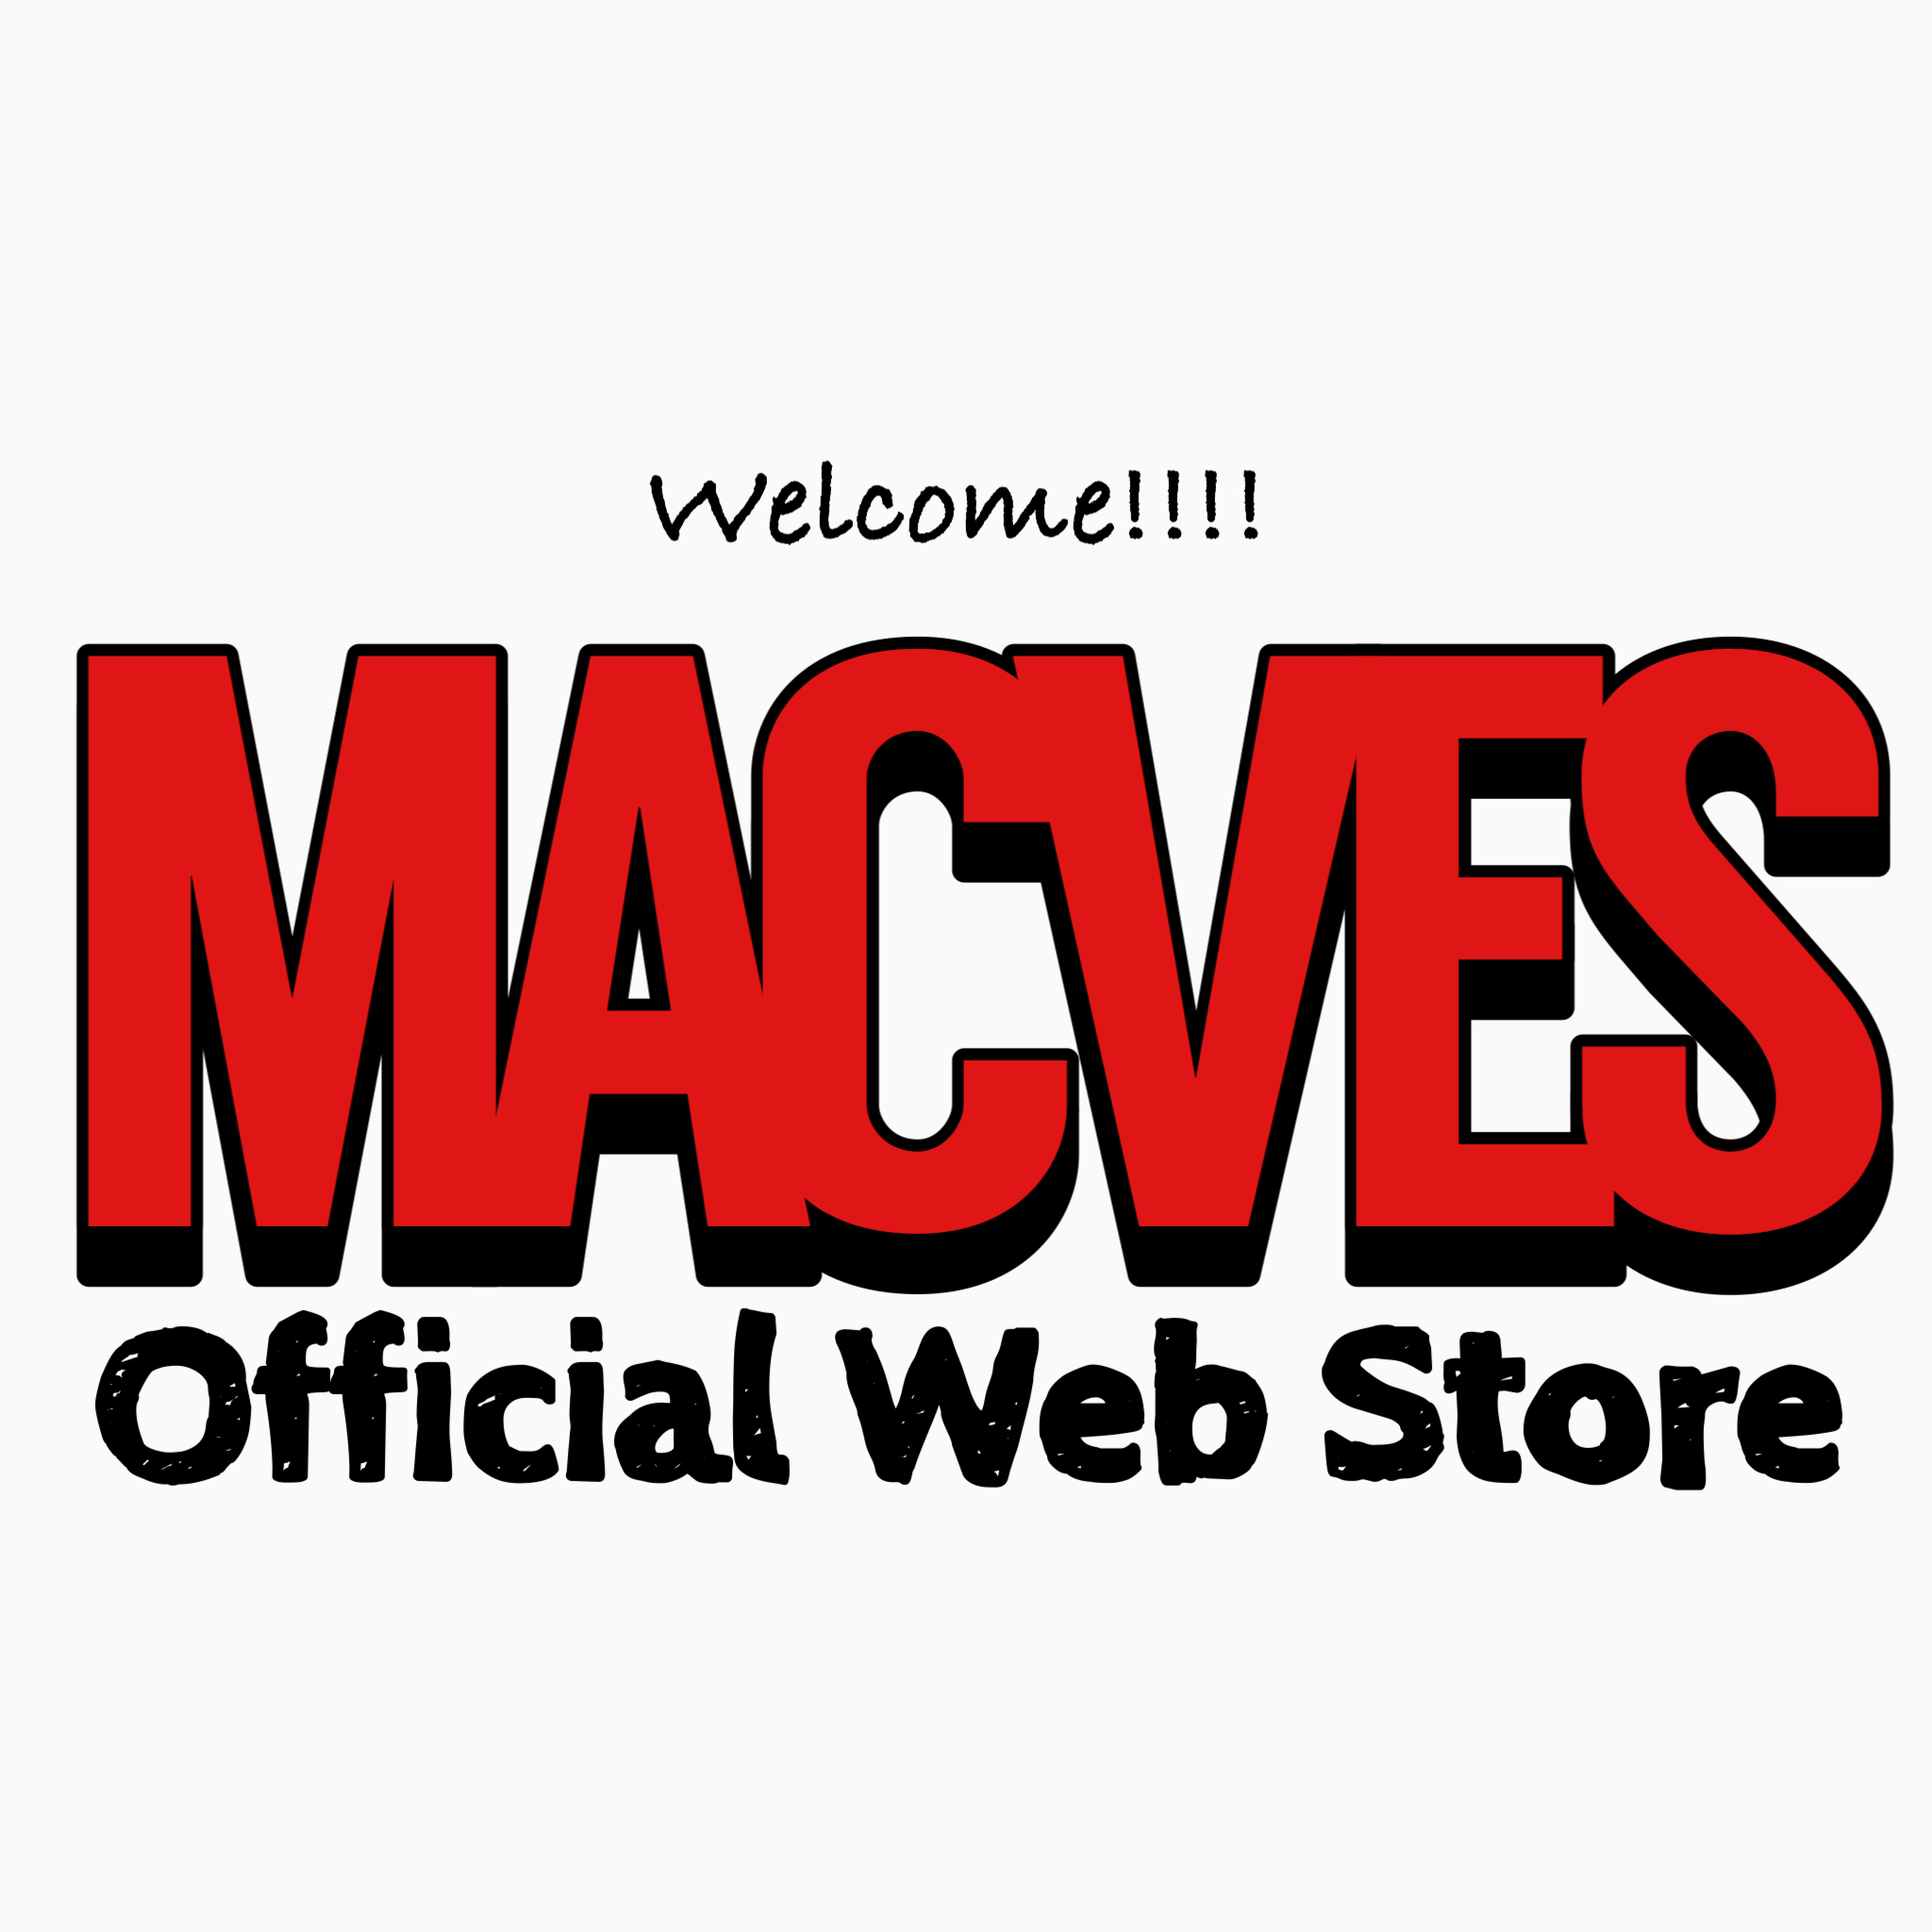 MACVES OFFICIAL WEB STORE